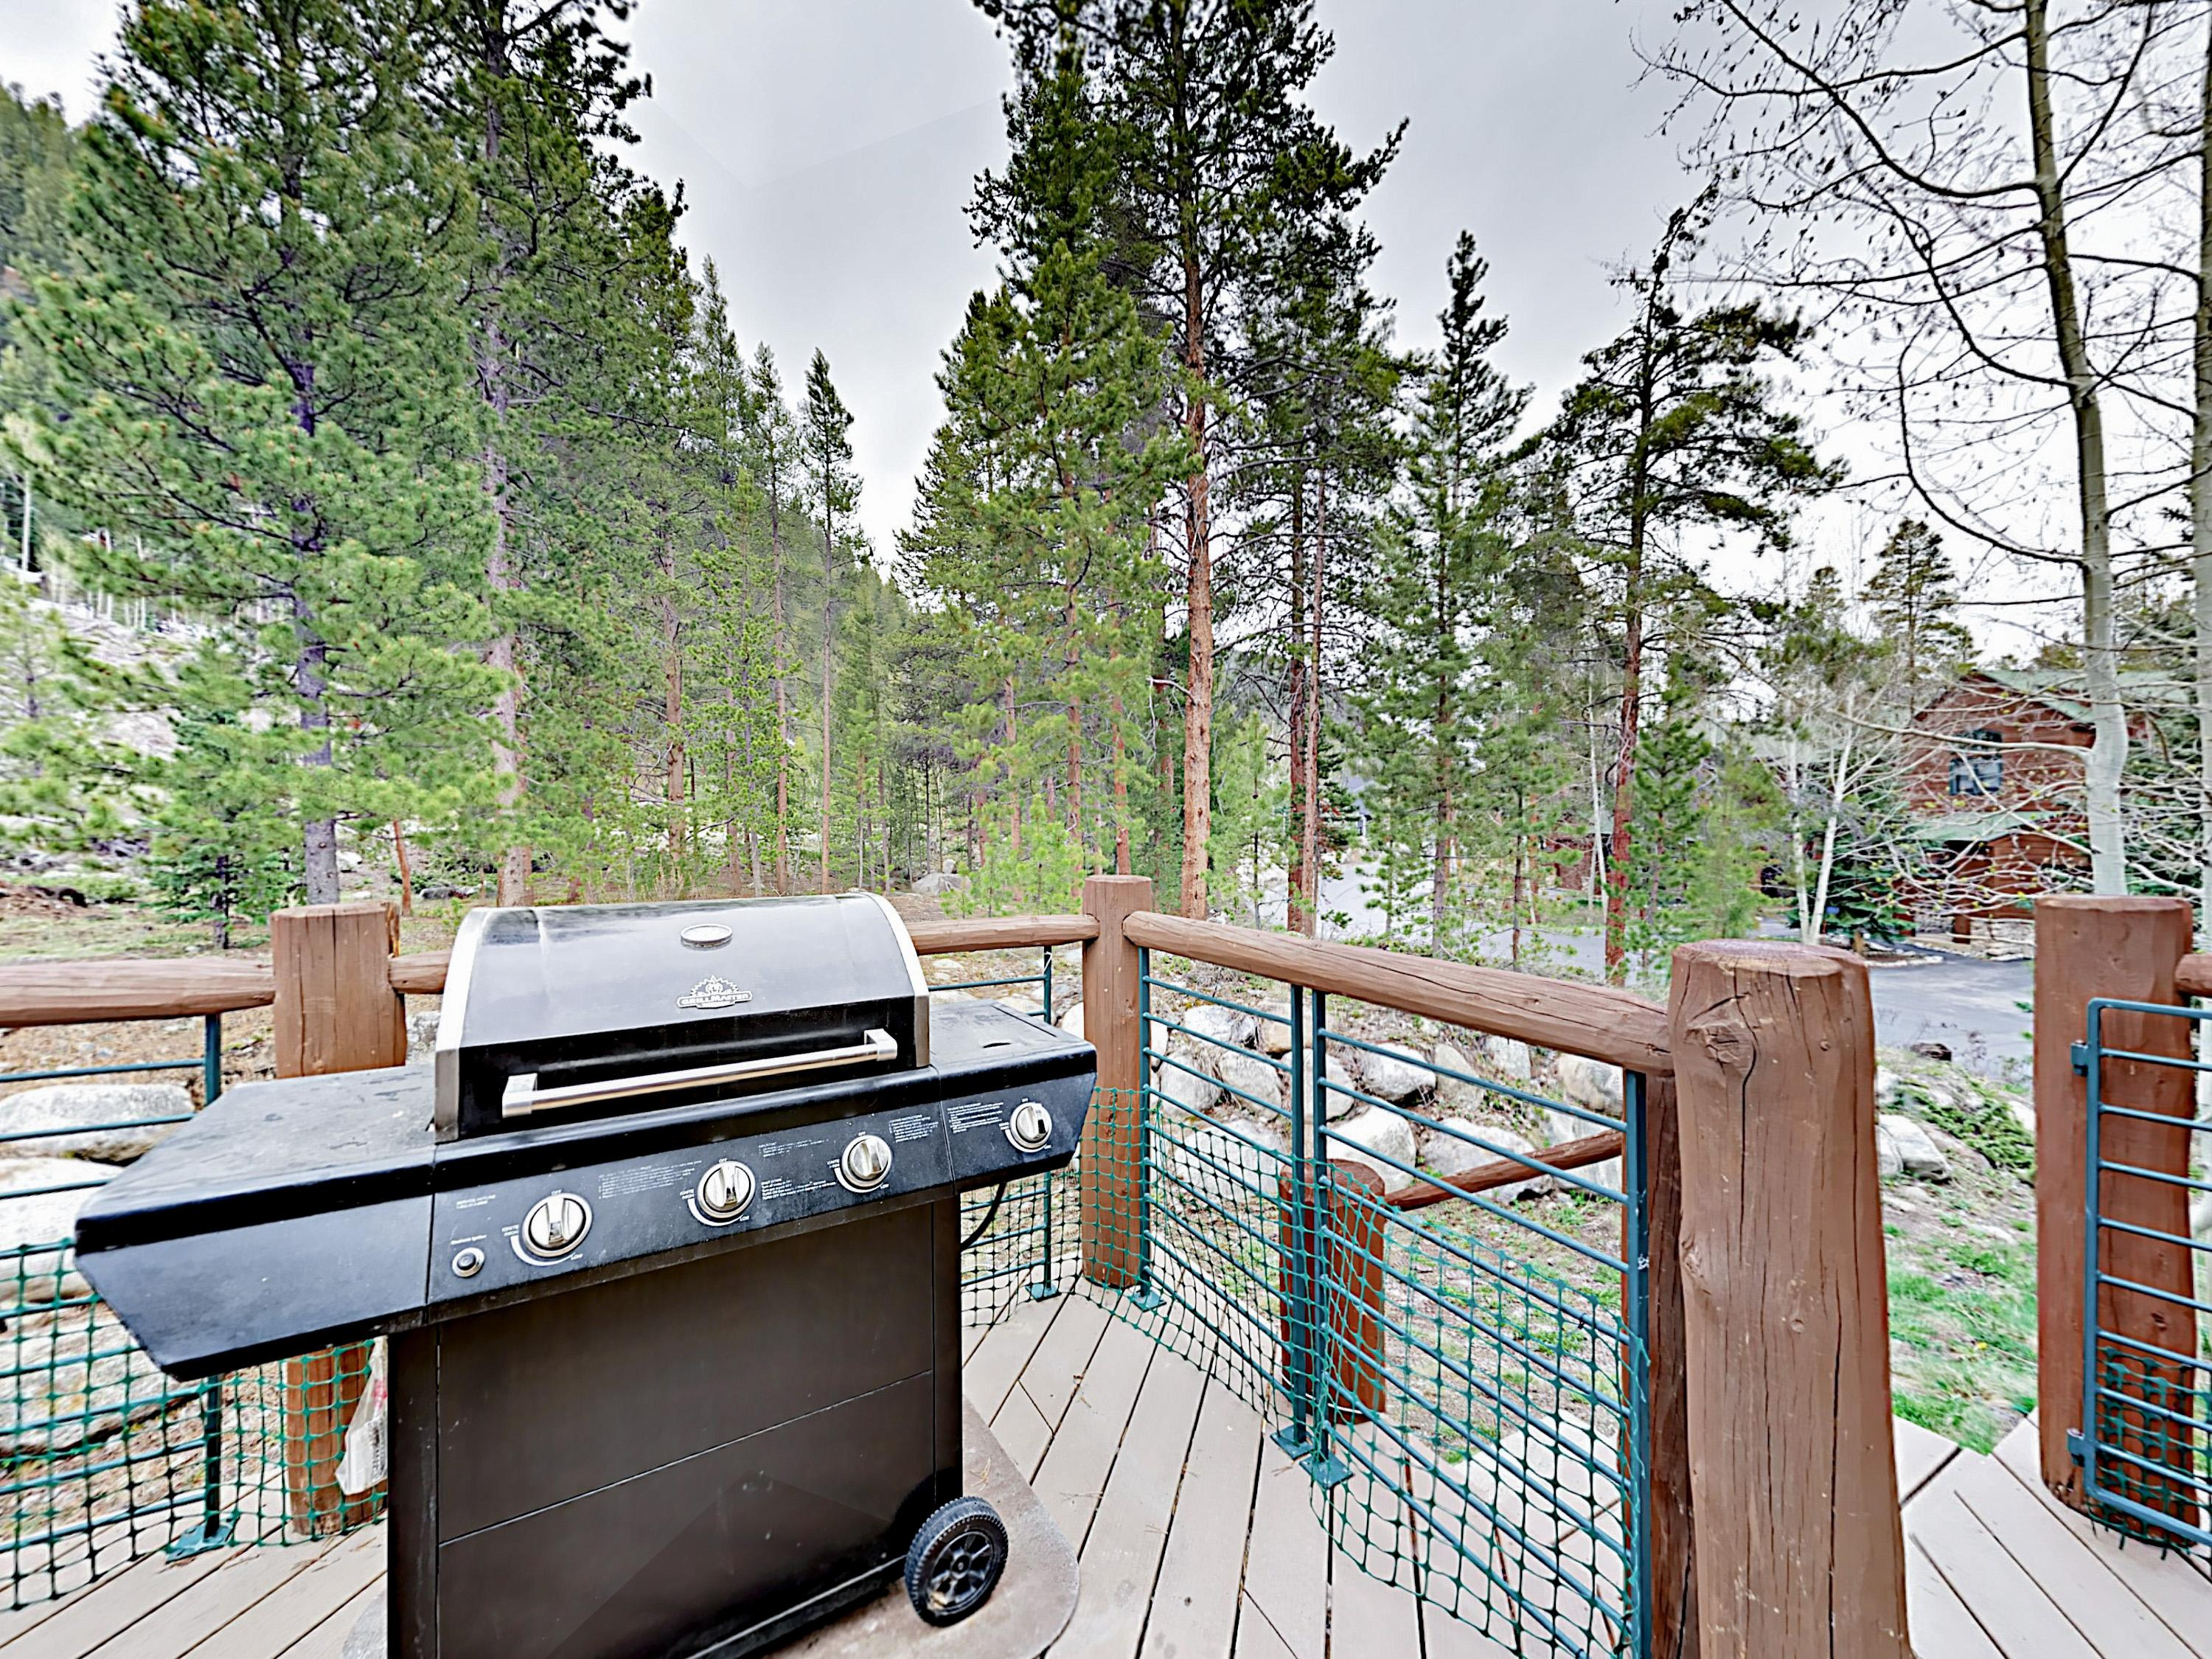 Grill on a forested deck with wooded views and seating for four.